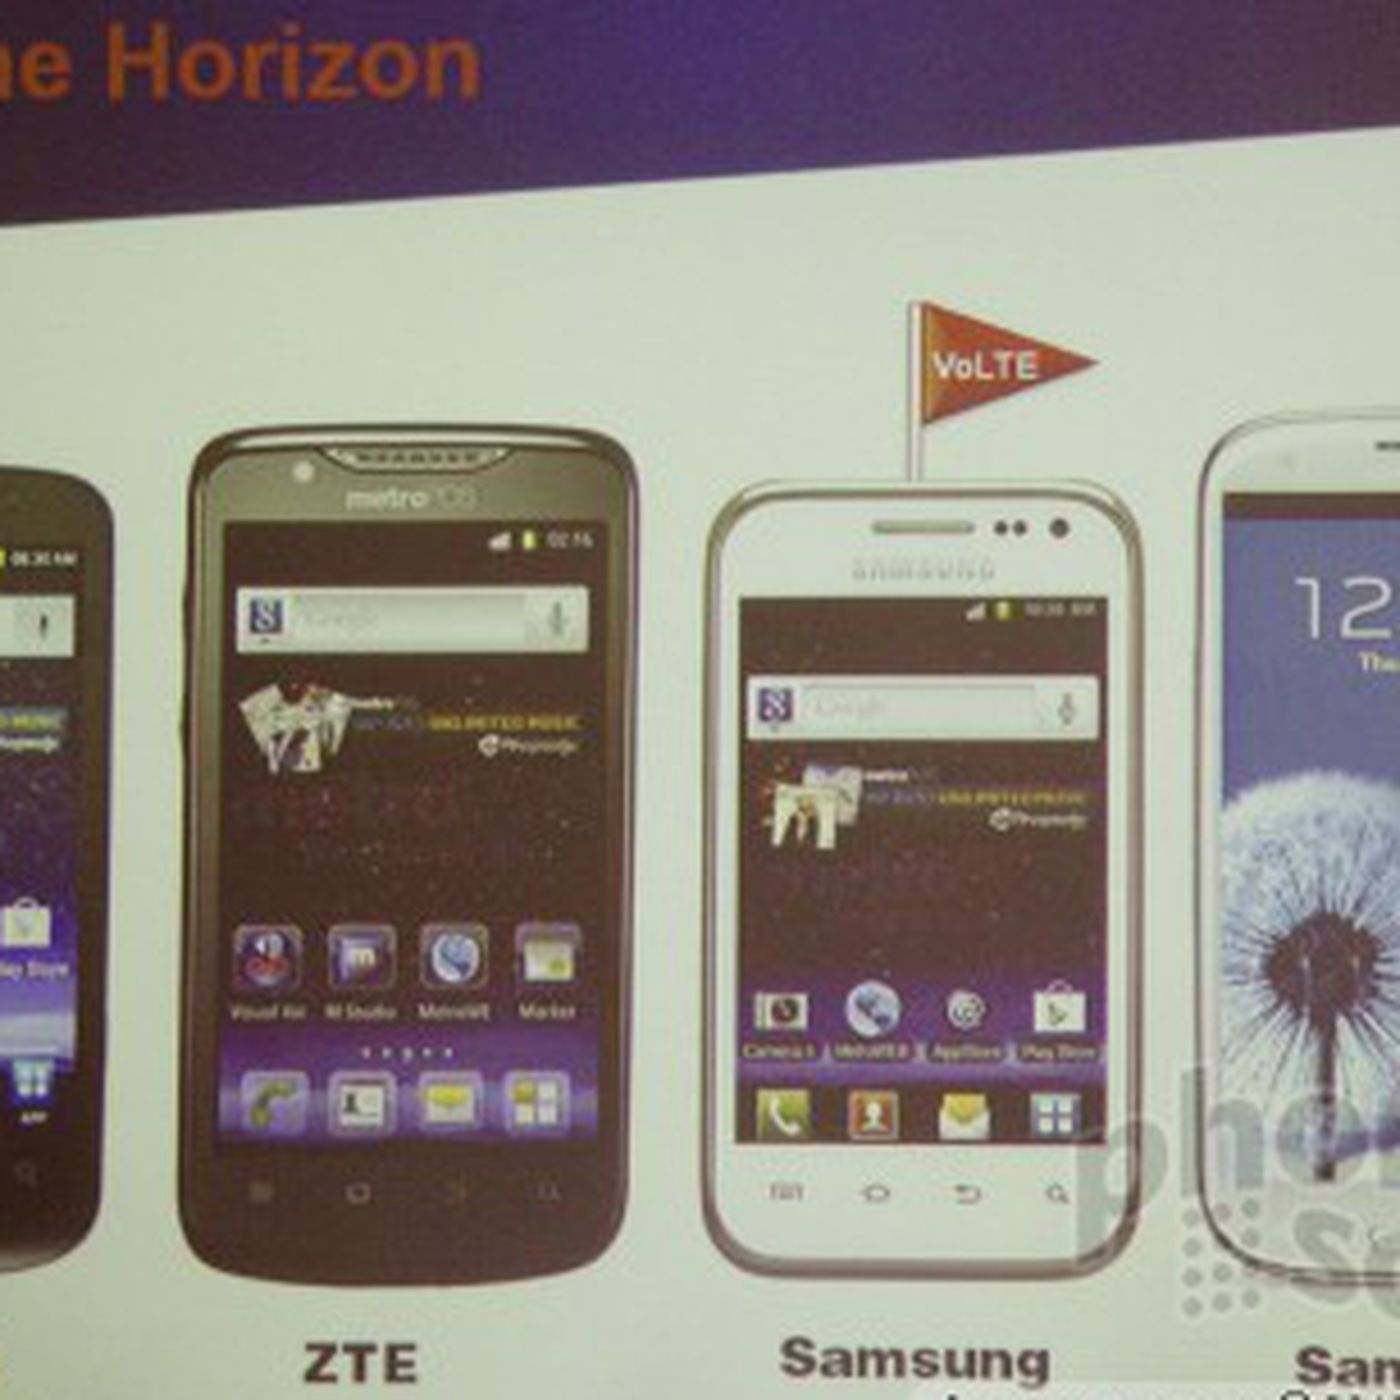 Metropcs Details Fall Smartphone Lineup Galaxy S Iii Due Later This Year The Verge